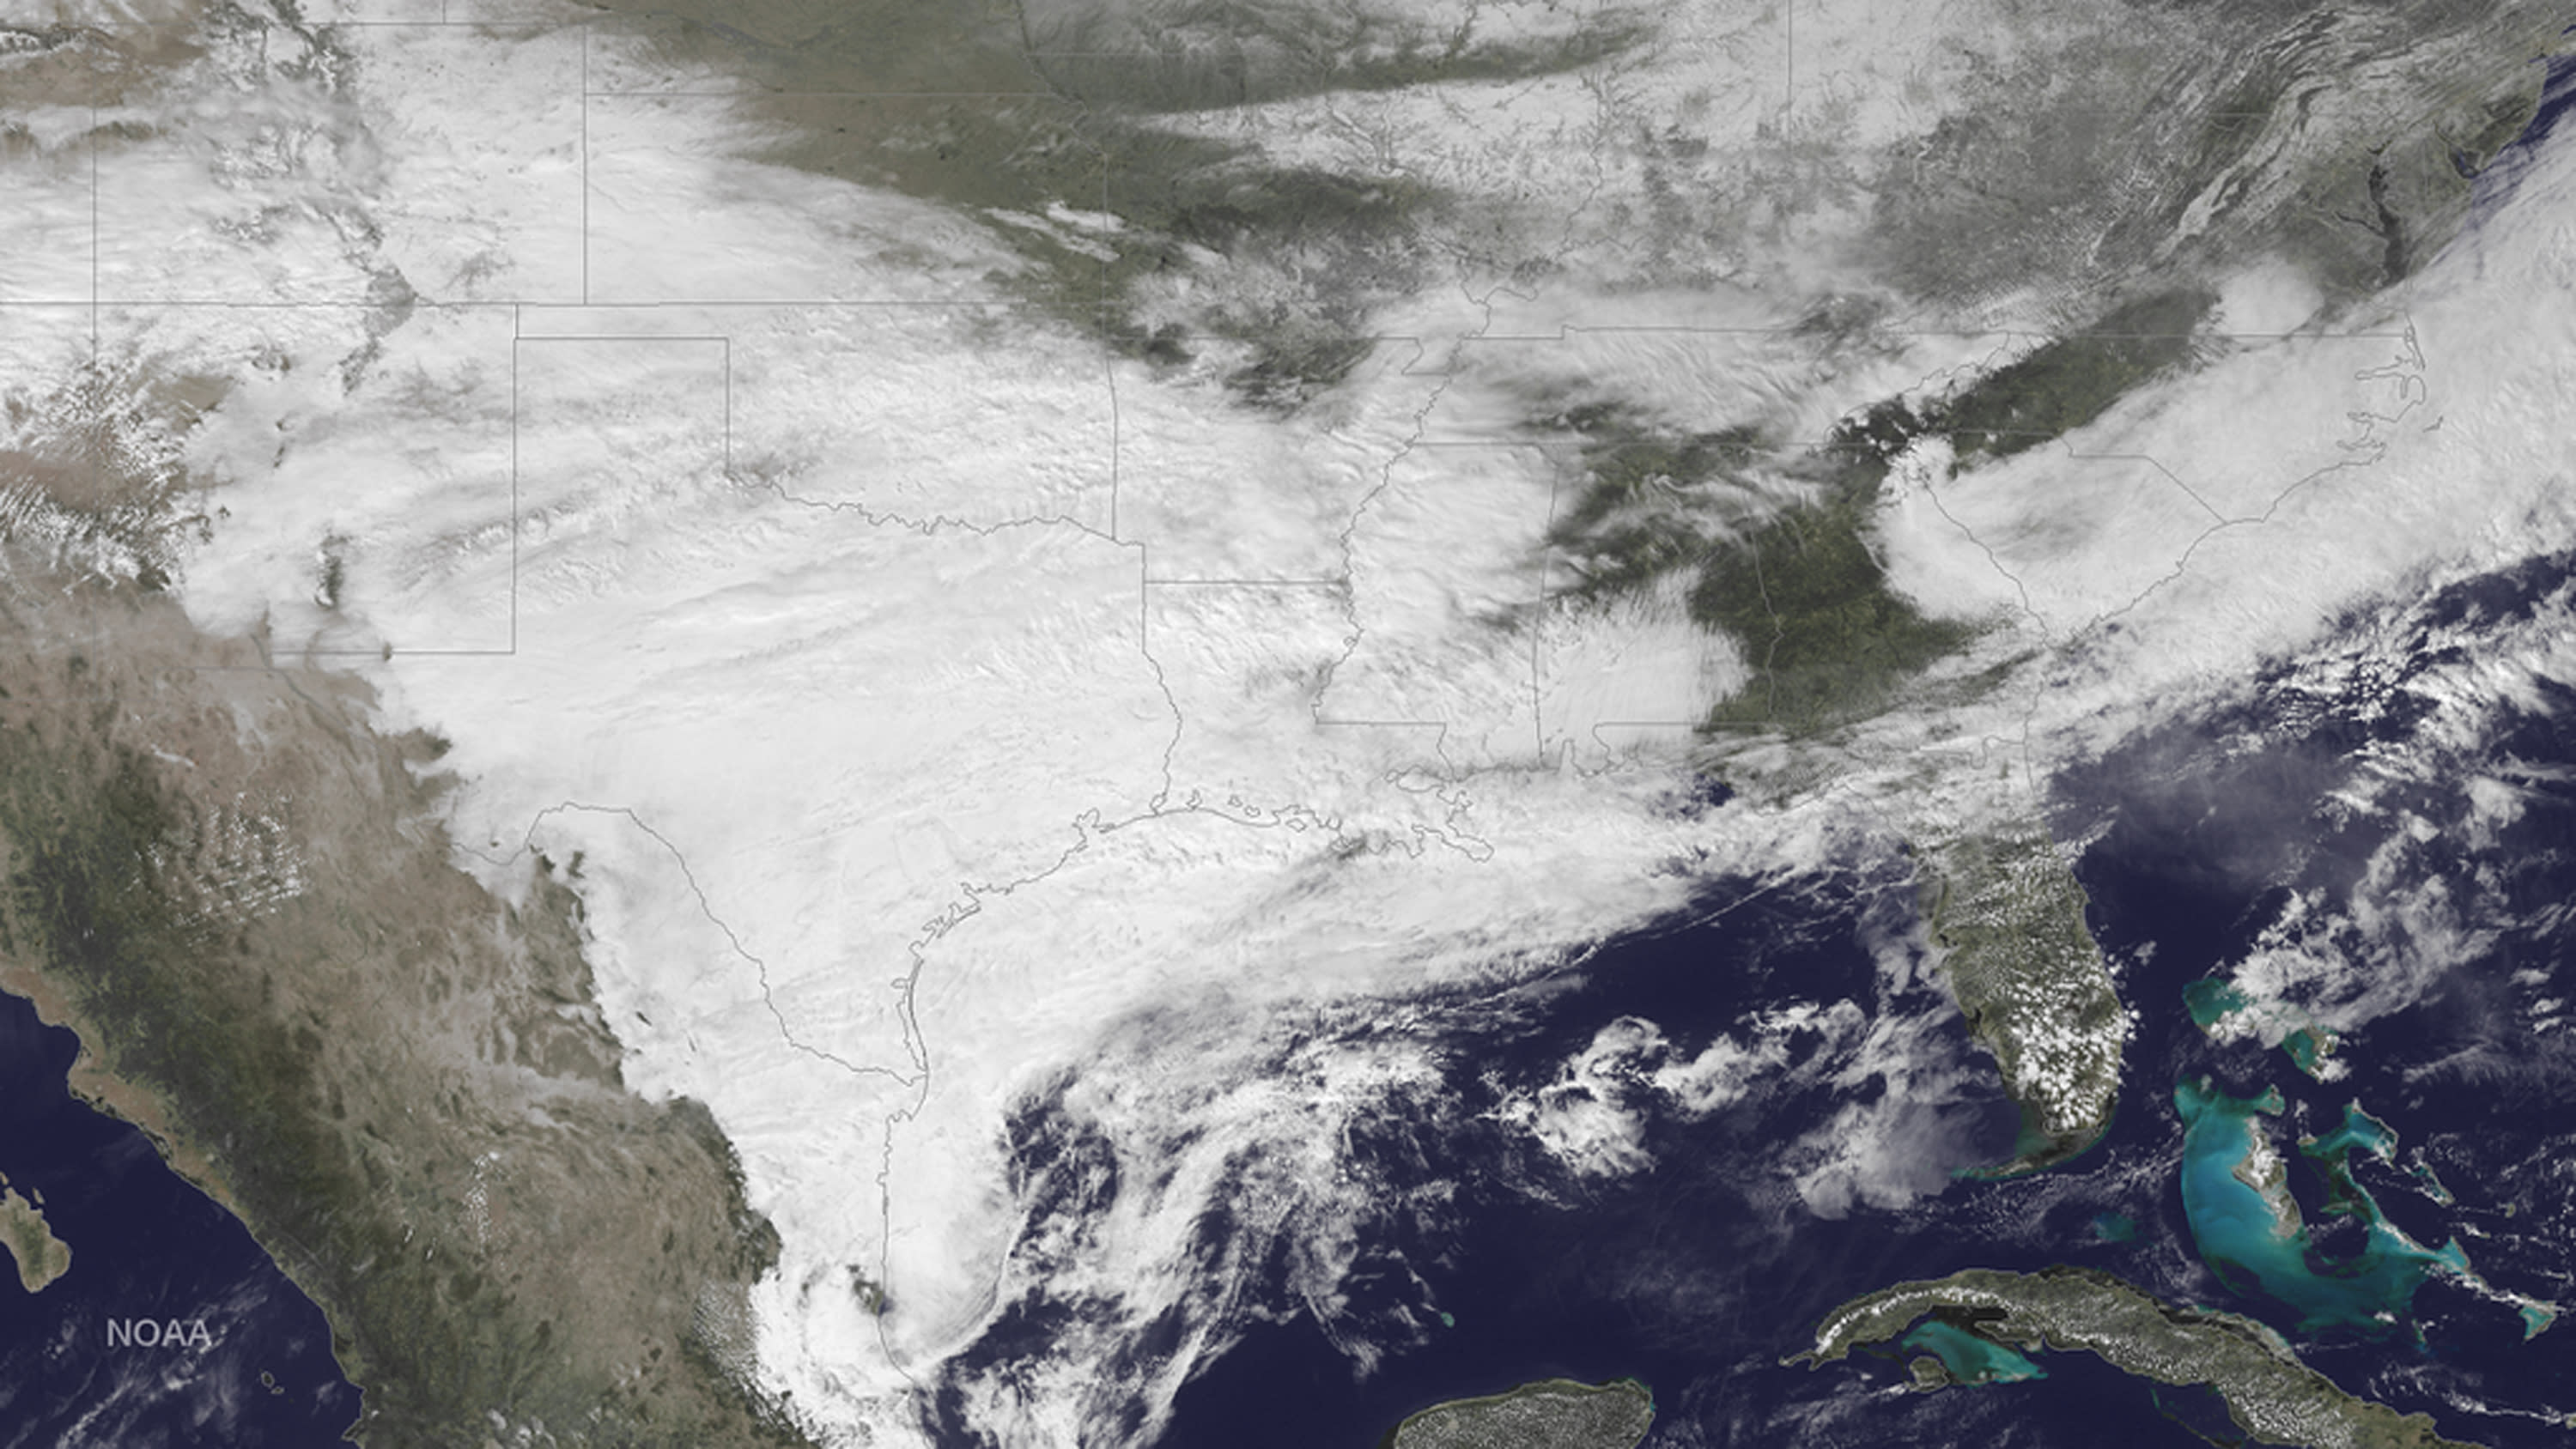 Extreme cold snap causes T-Mobile outages in Texas and other parts of the US